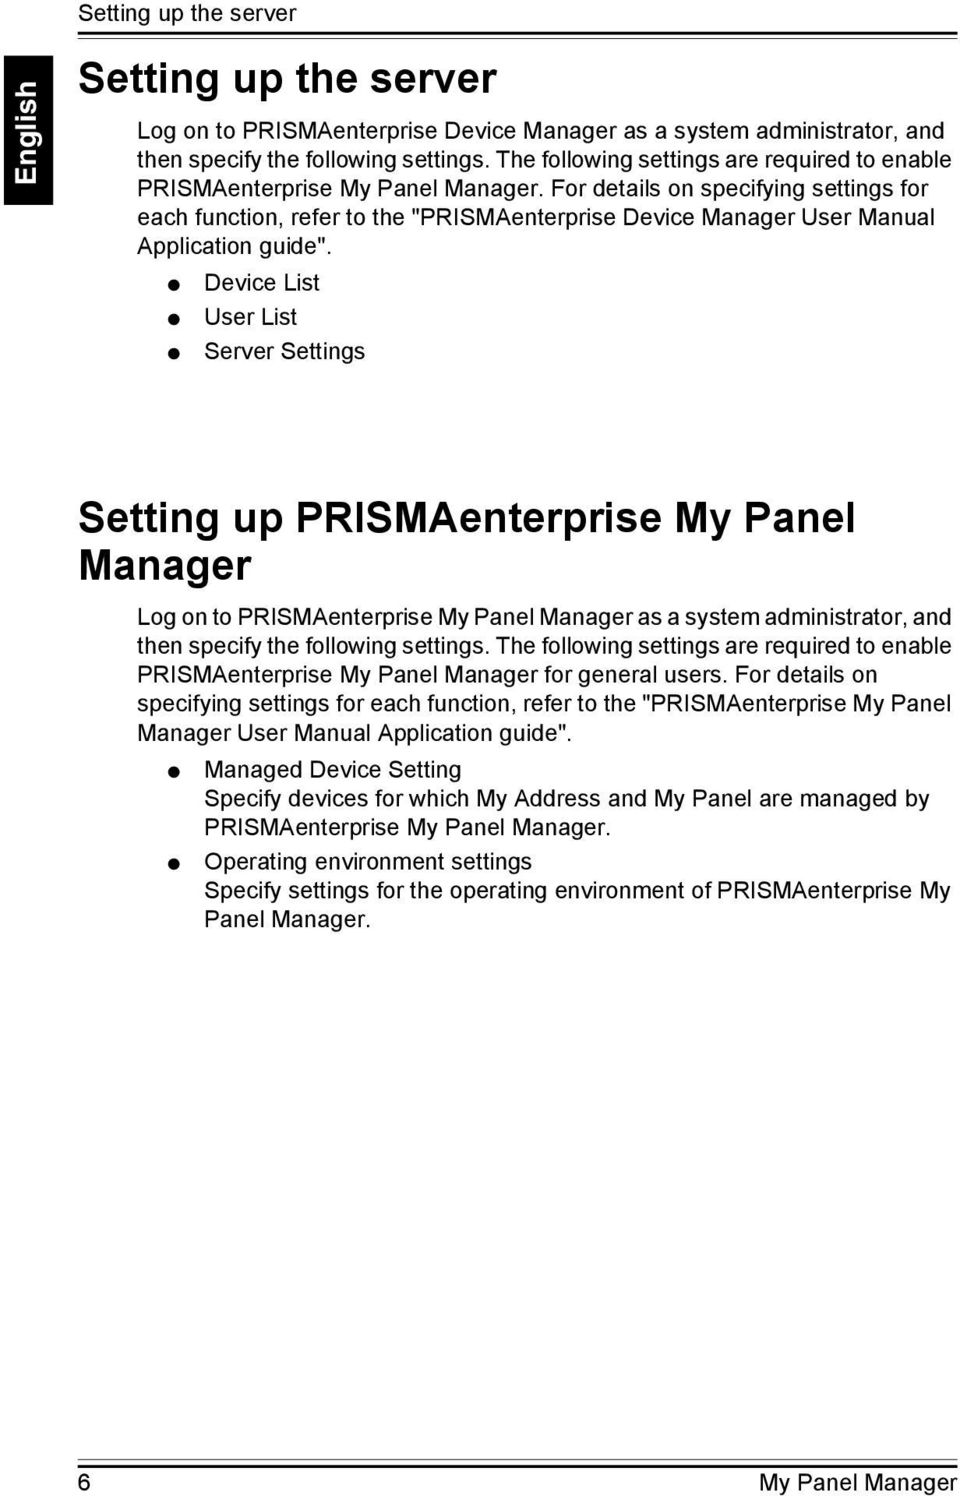 "For details on specifying settings for each function, refer to the ""PRISMAenterprise Device Manager User Manual Application guide""."